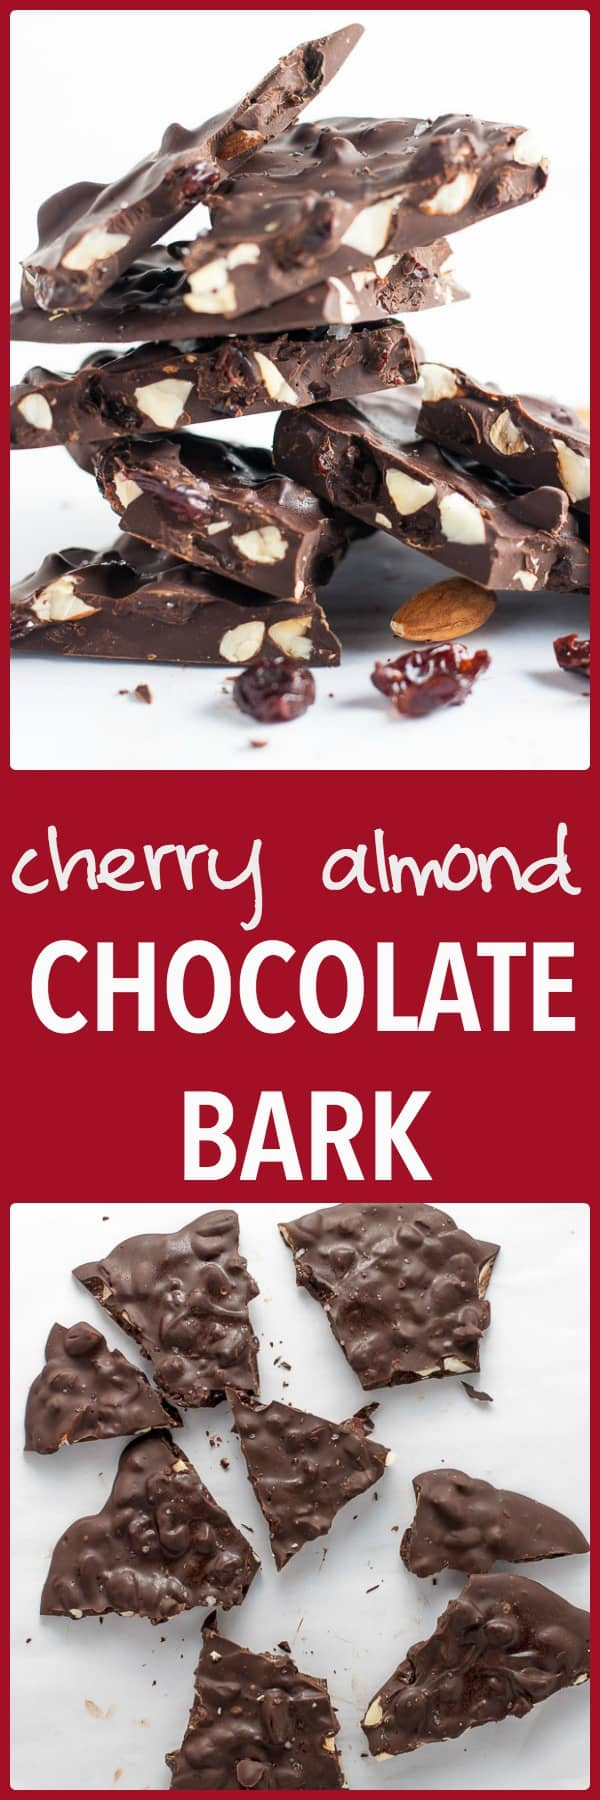 Cherry Almond Chocolate Bark. Need a last-minute sweet or hostess gift? Fast and super easy! Only 3 ingredients.